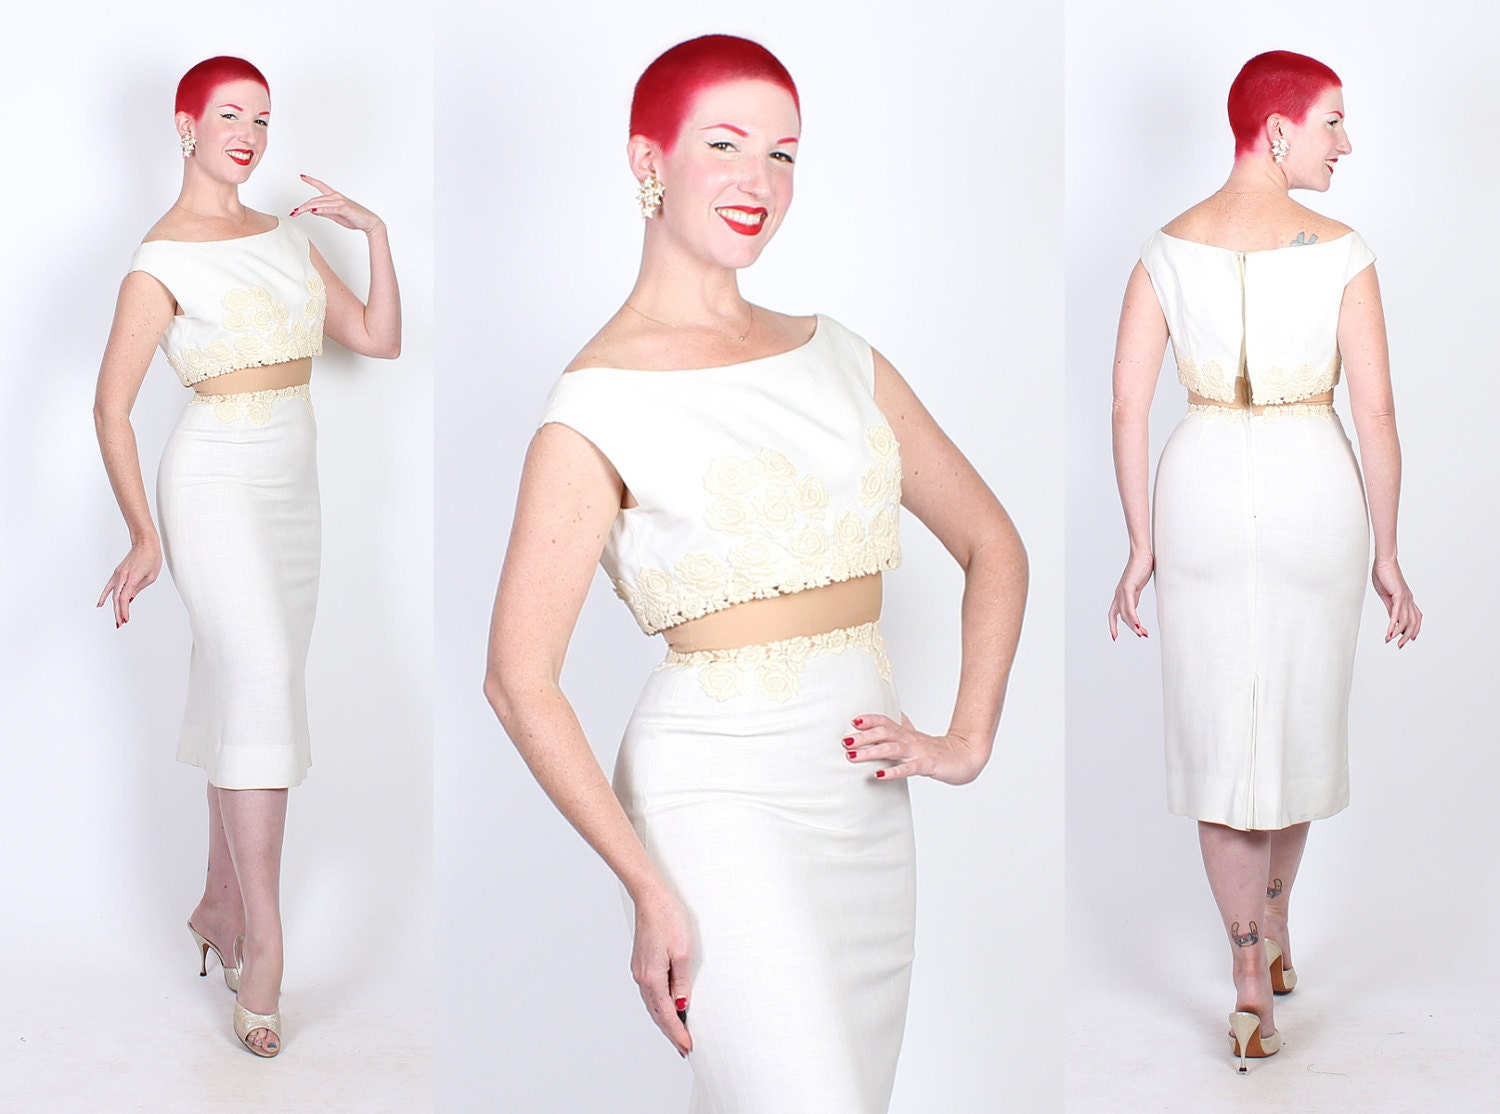 DESIGNER 1950's Bombshell Linen w/ Floral Applique Extreme Hourglass Cocktail Dress w/ Illusion Nude Nylon/Mesh Midsection by Peggy Hunt - M